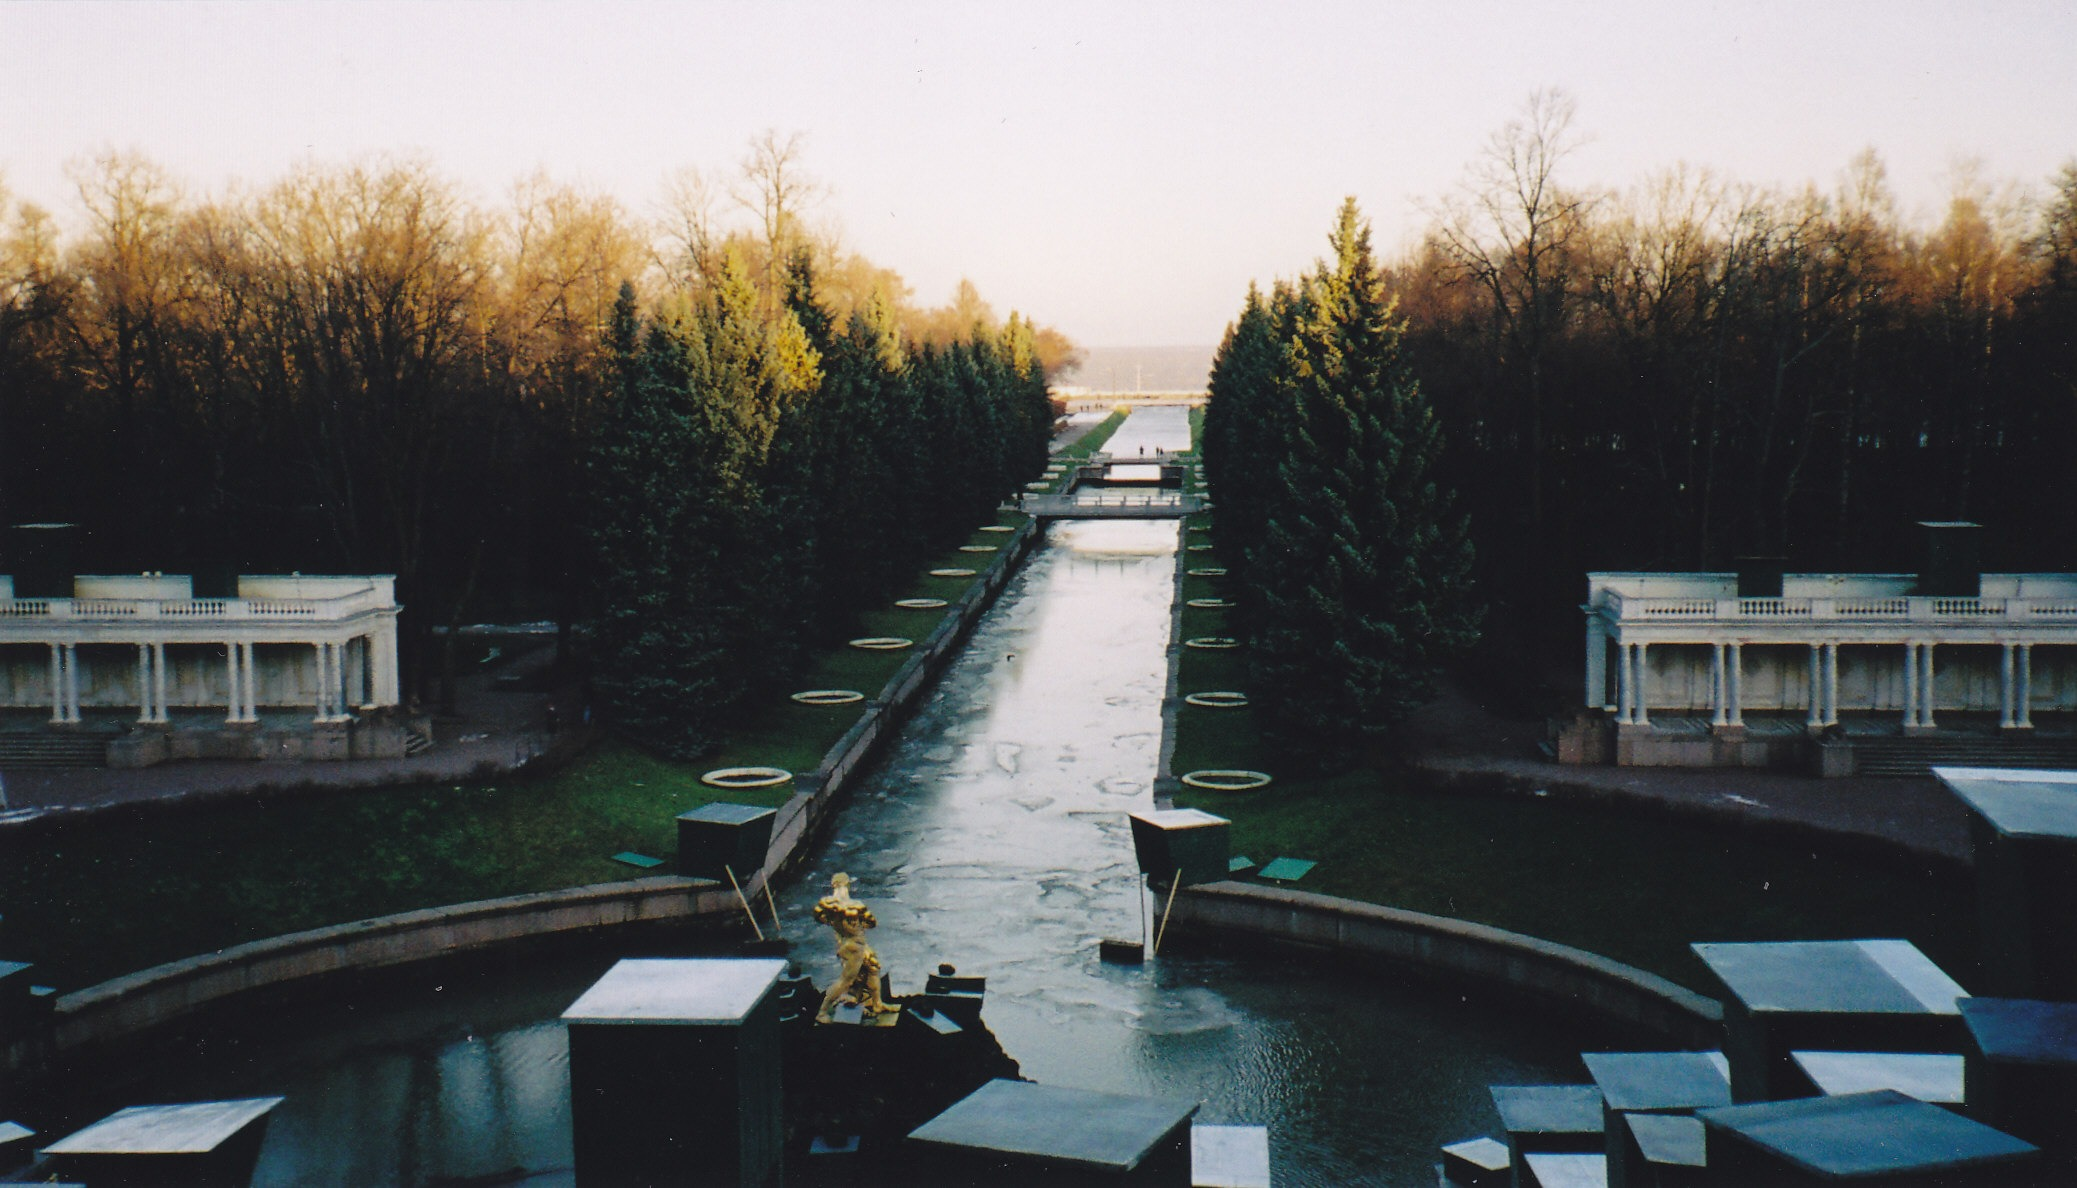 The fountains at Peterhof